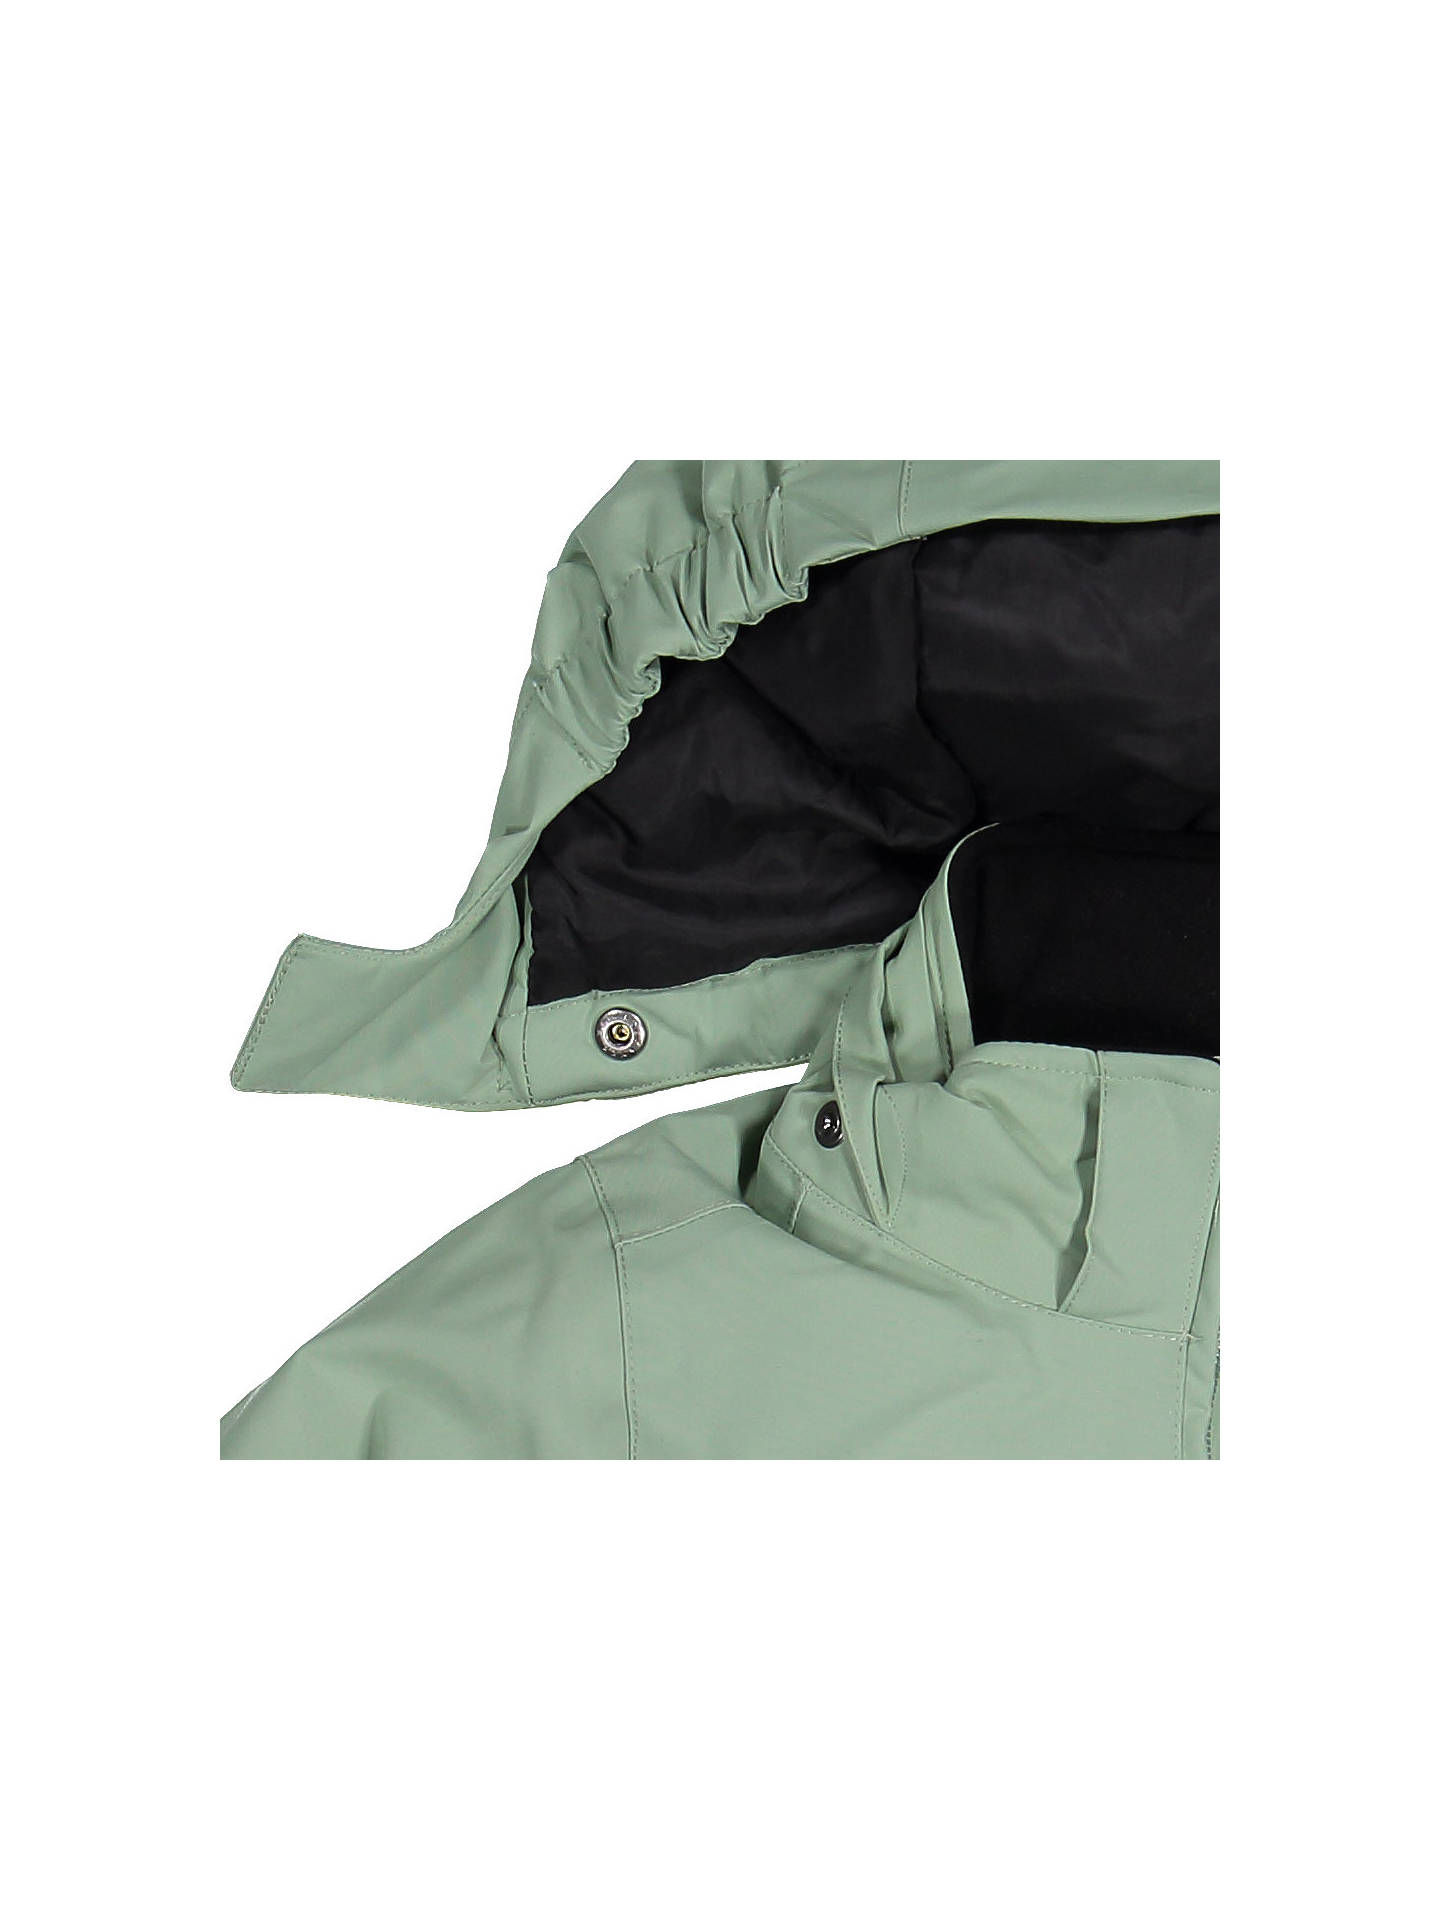 Buy Polarn O. Pyret Children's Waterproof Padded Coat, Green, 3-4 years Online at johnlewis.com